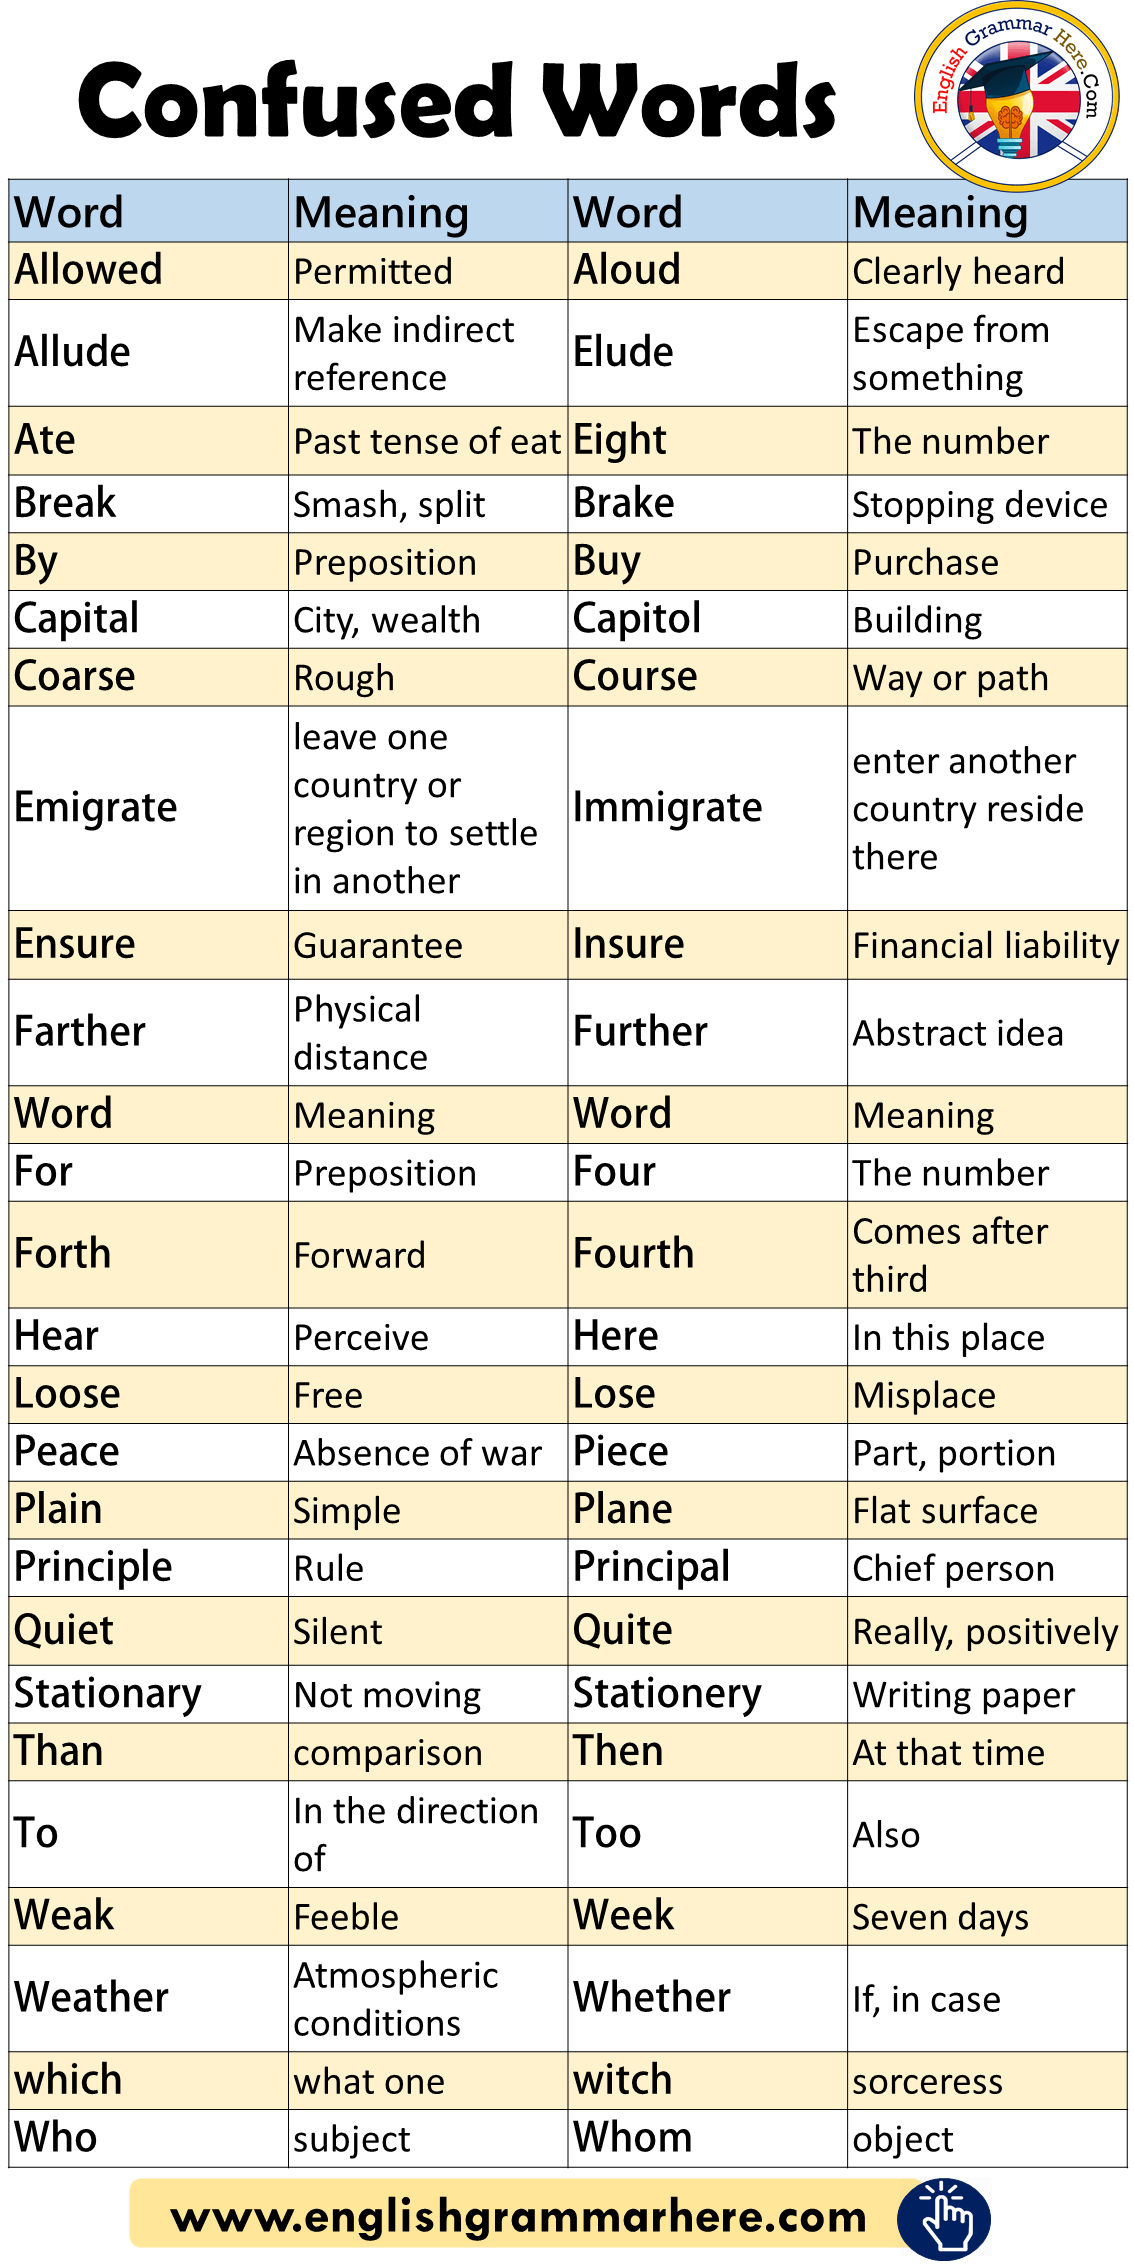 Confused Words List and Meaning - English Grammar Here